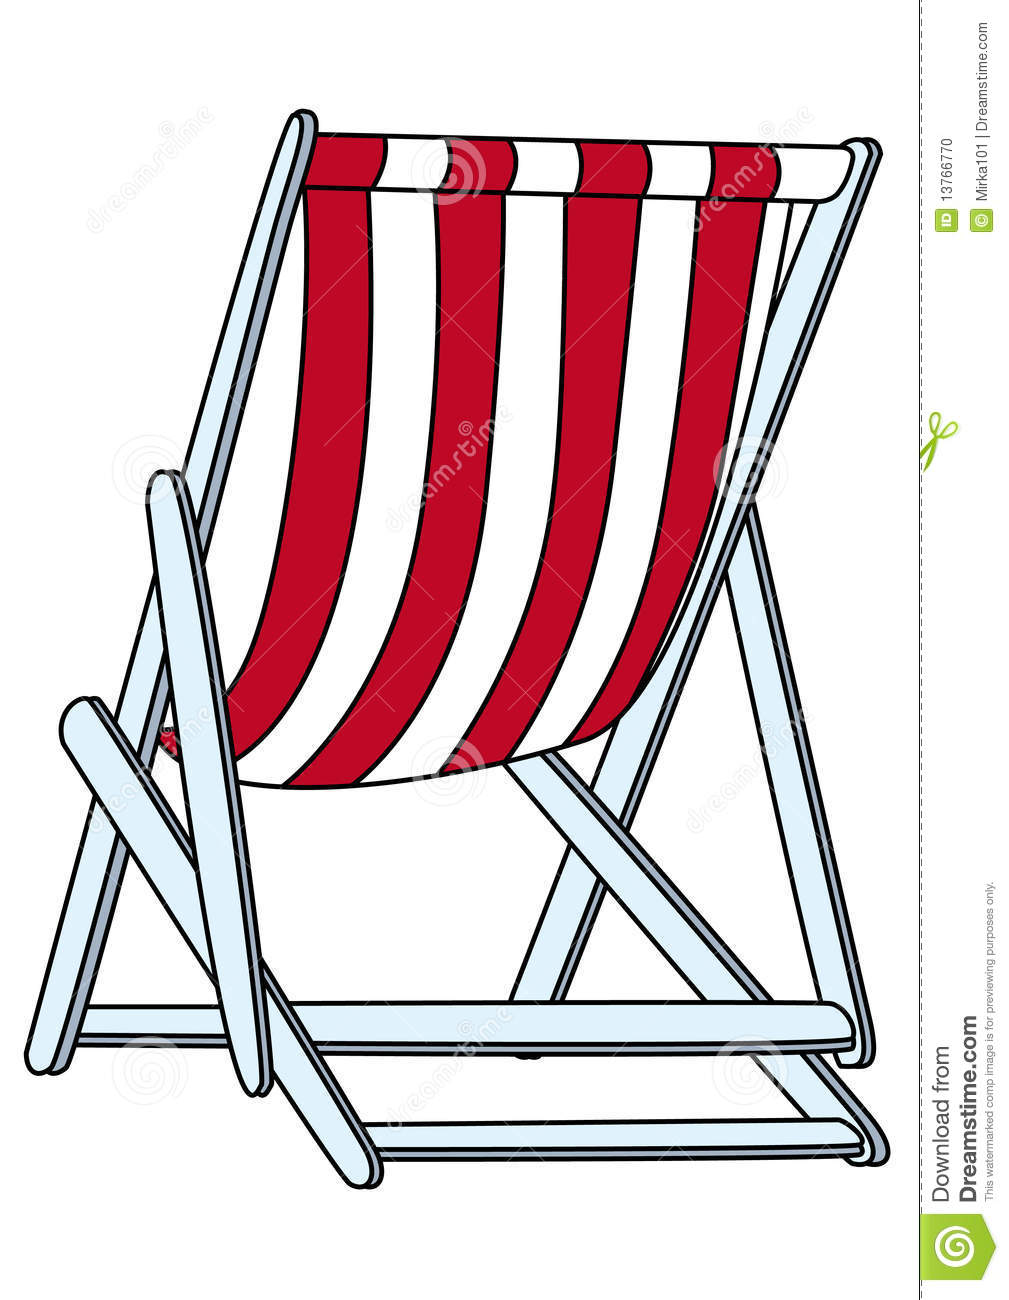 Deck chairs clipart - Clipground